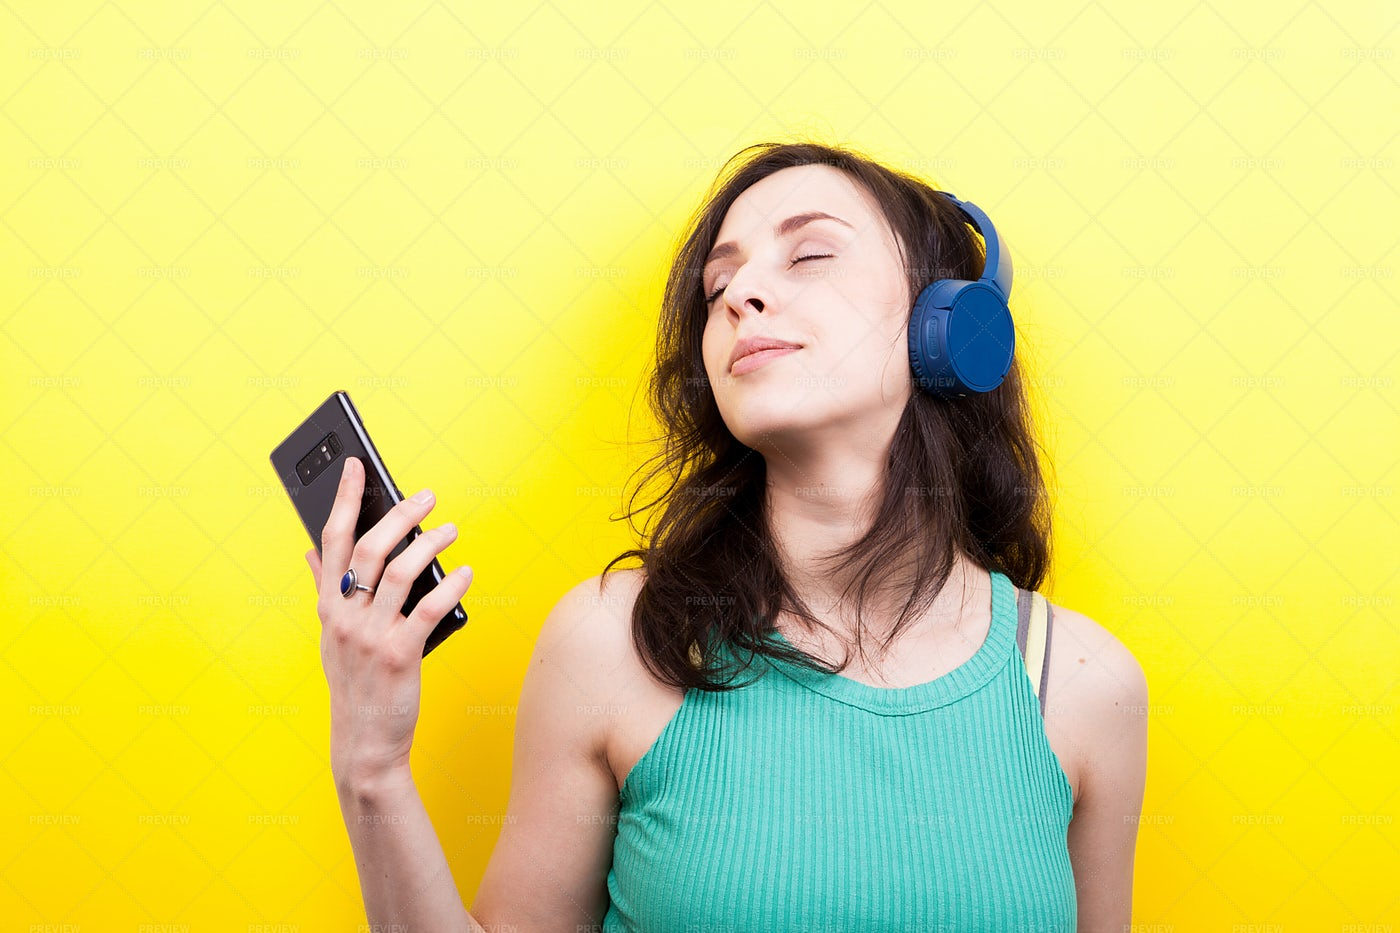 Young Woman Listening To Music: Stock Photos